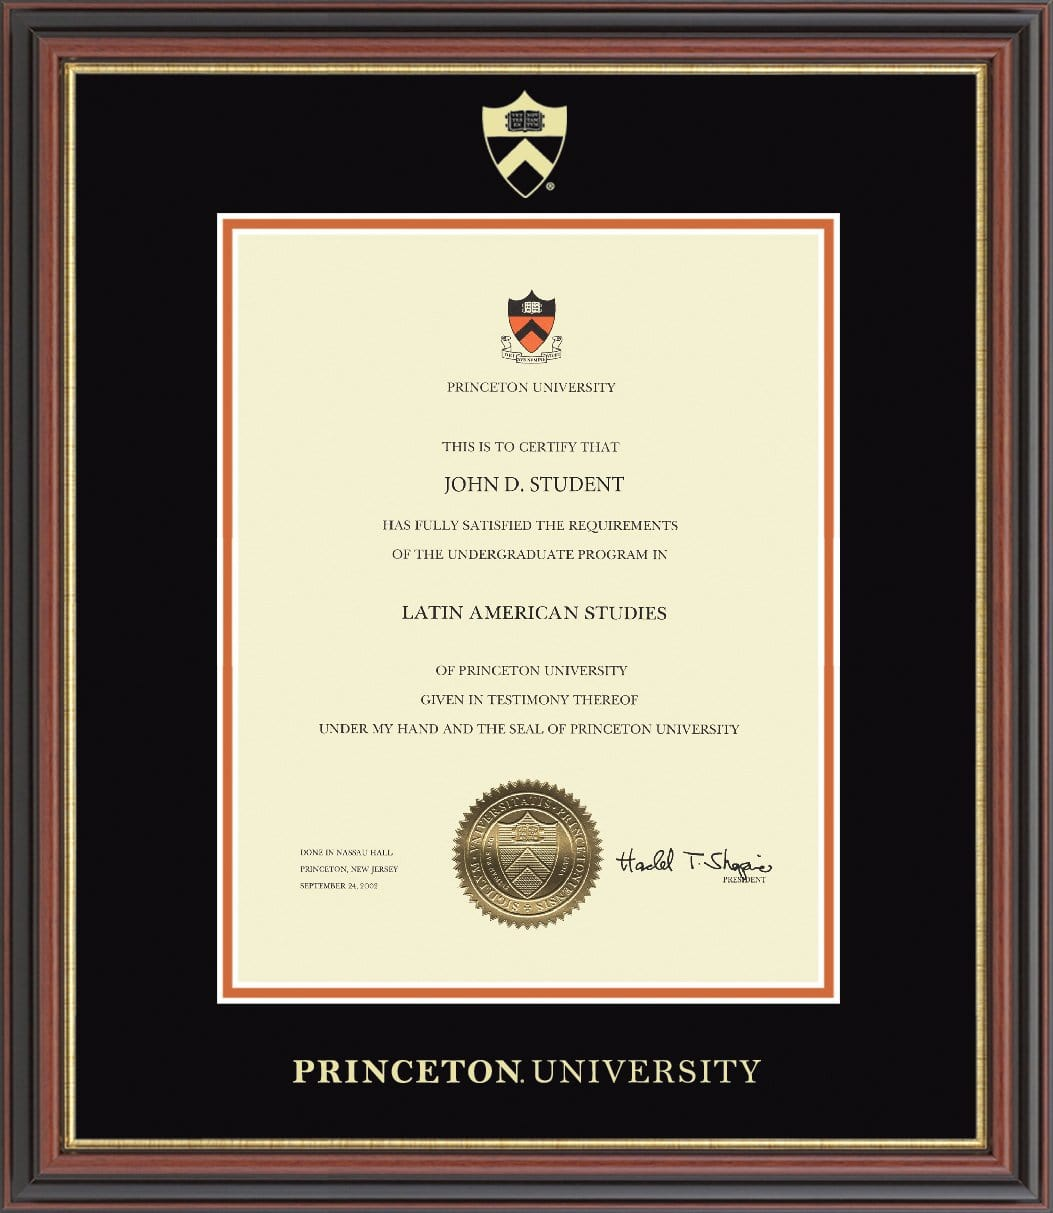 Certificate Frame Vertical The Princeton University Store